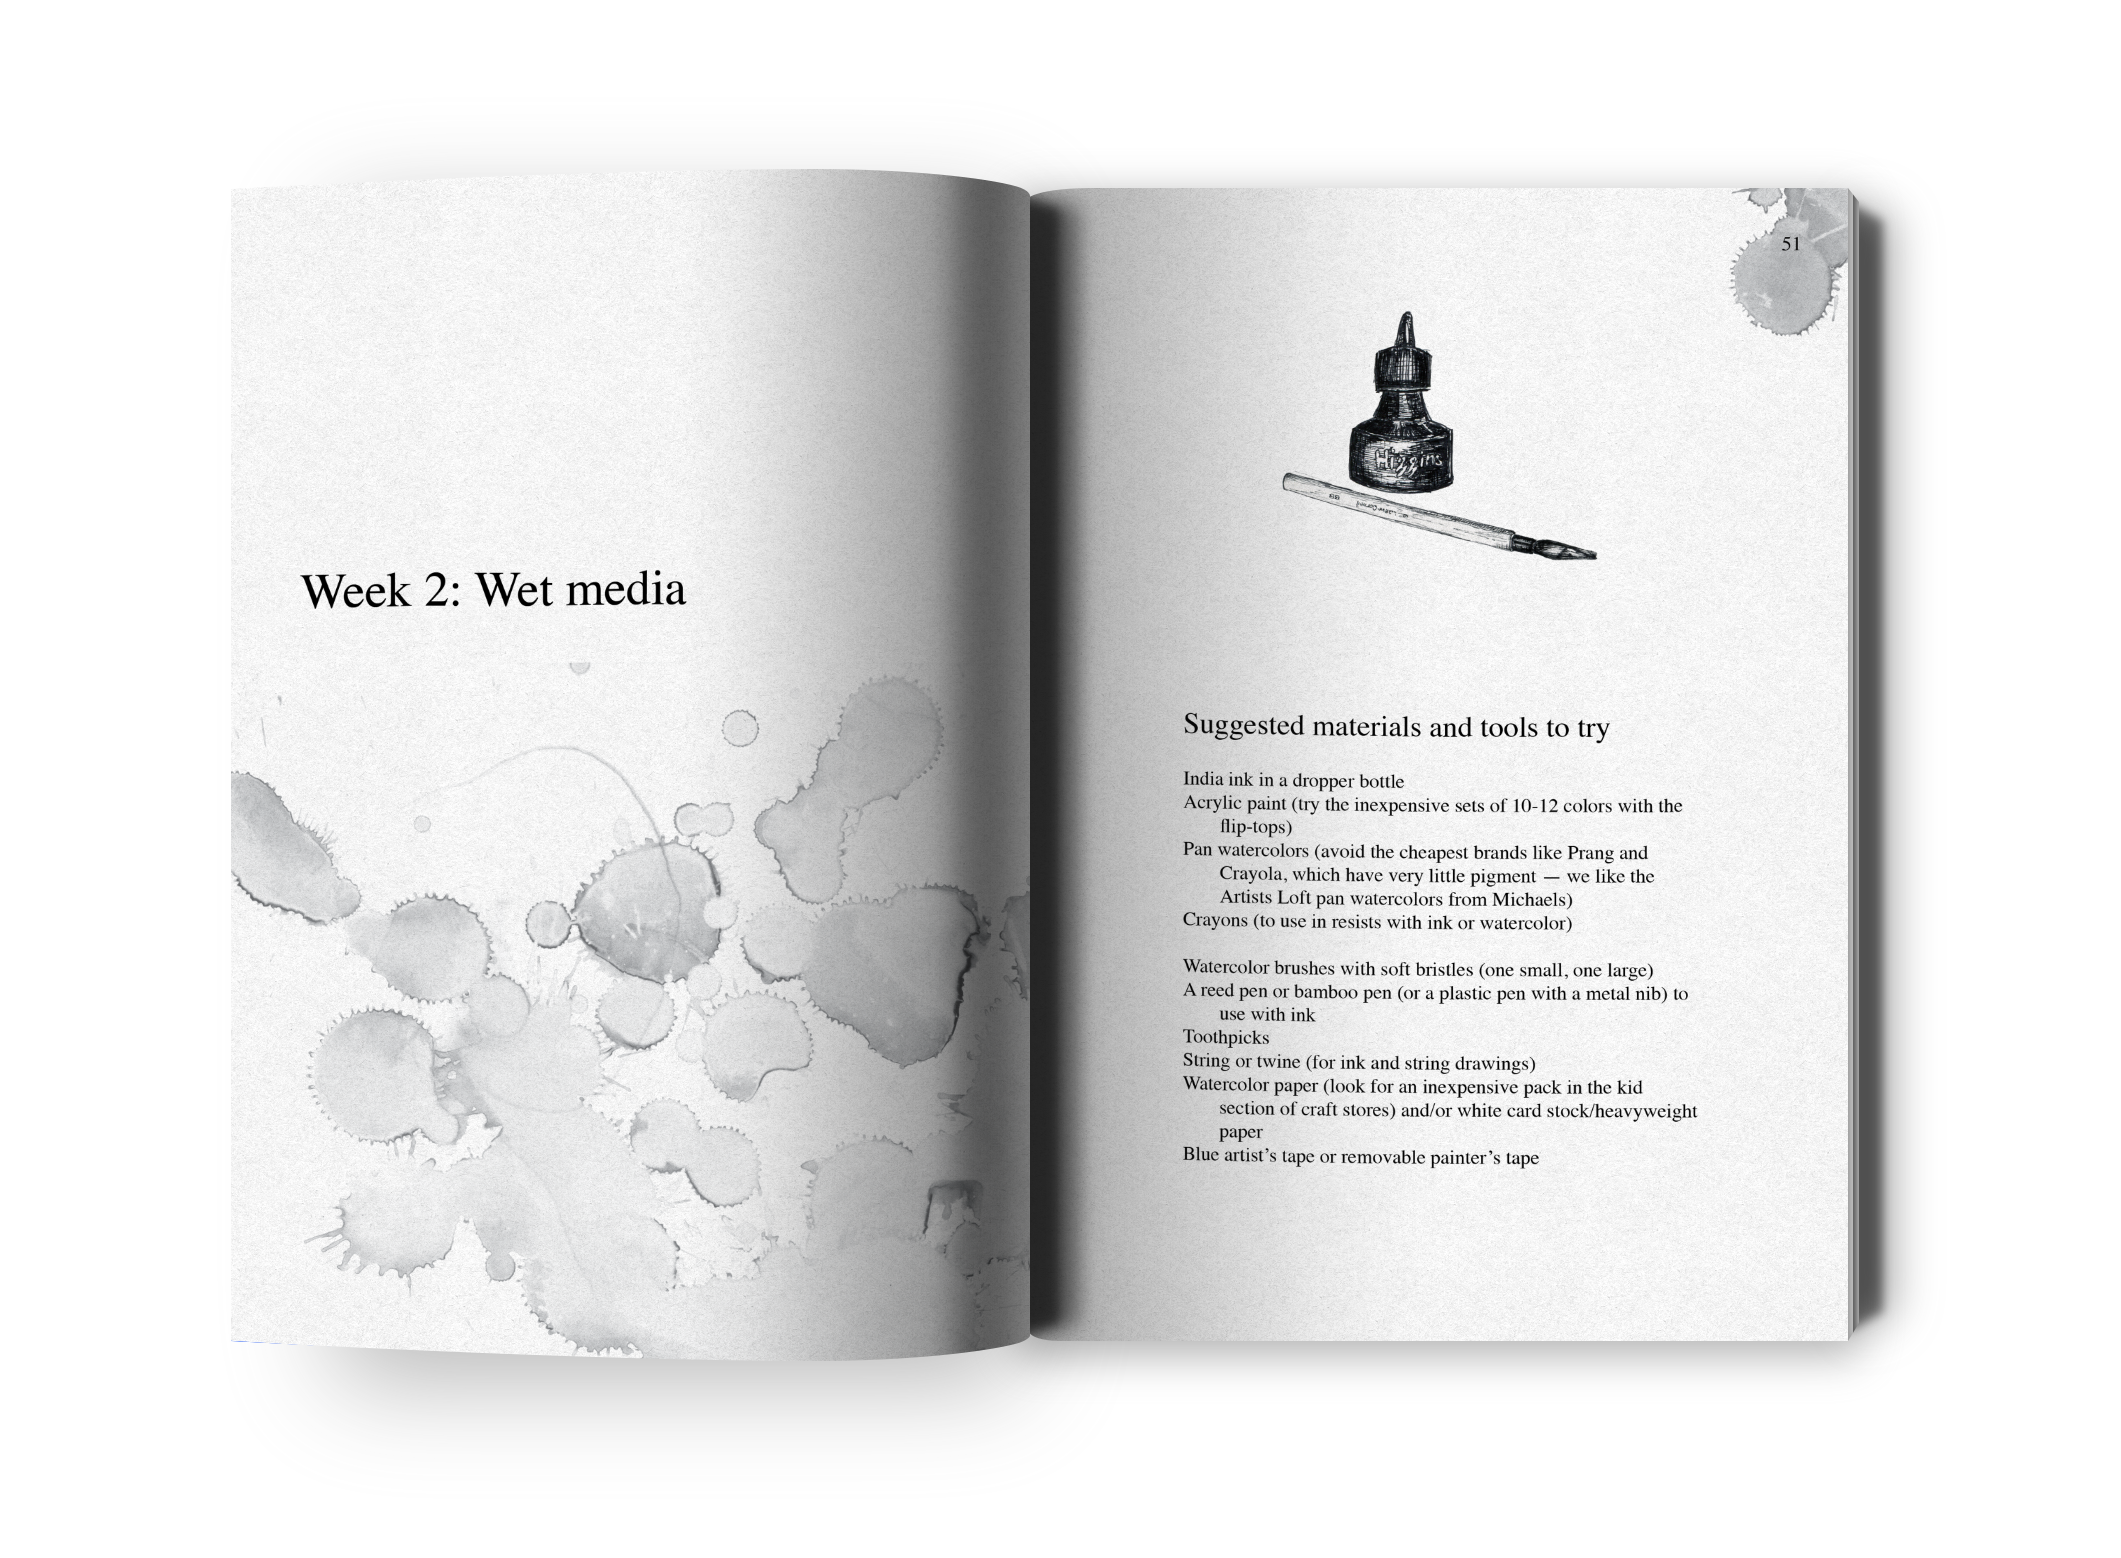 Book illustration and layout